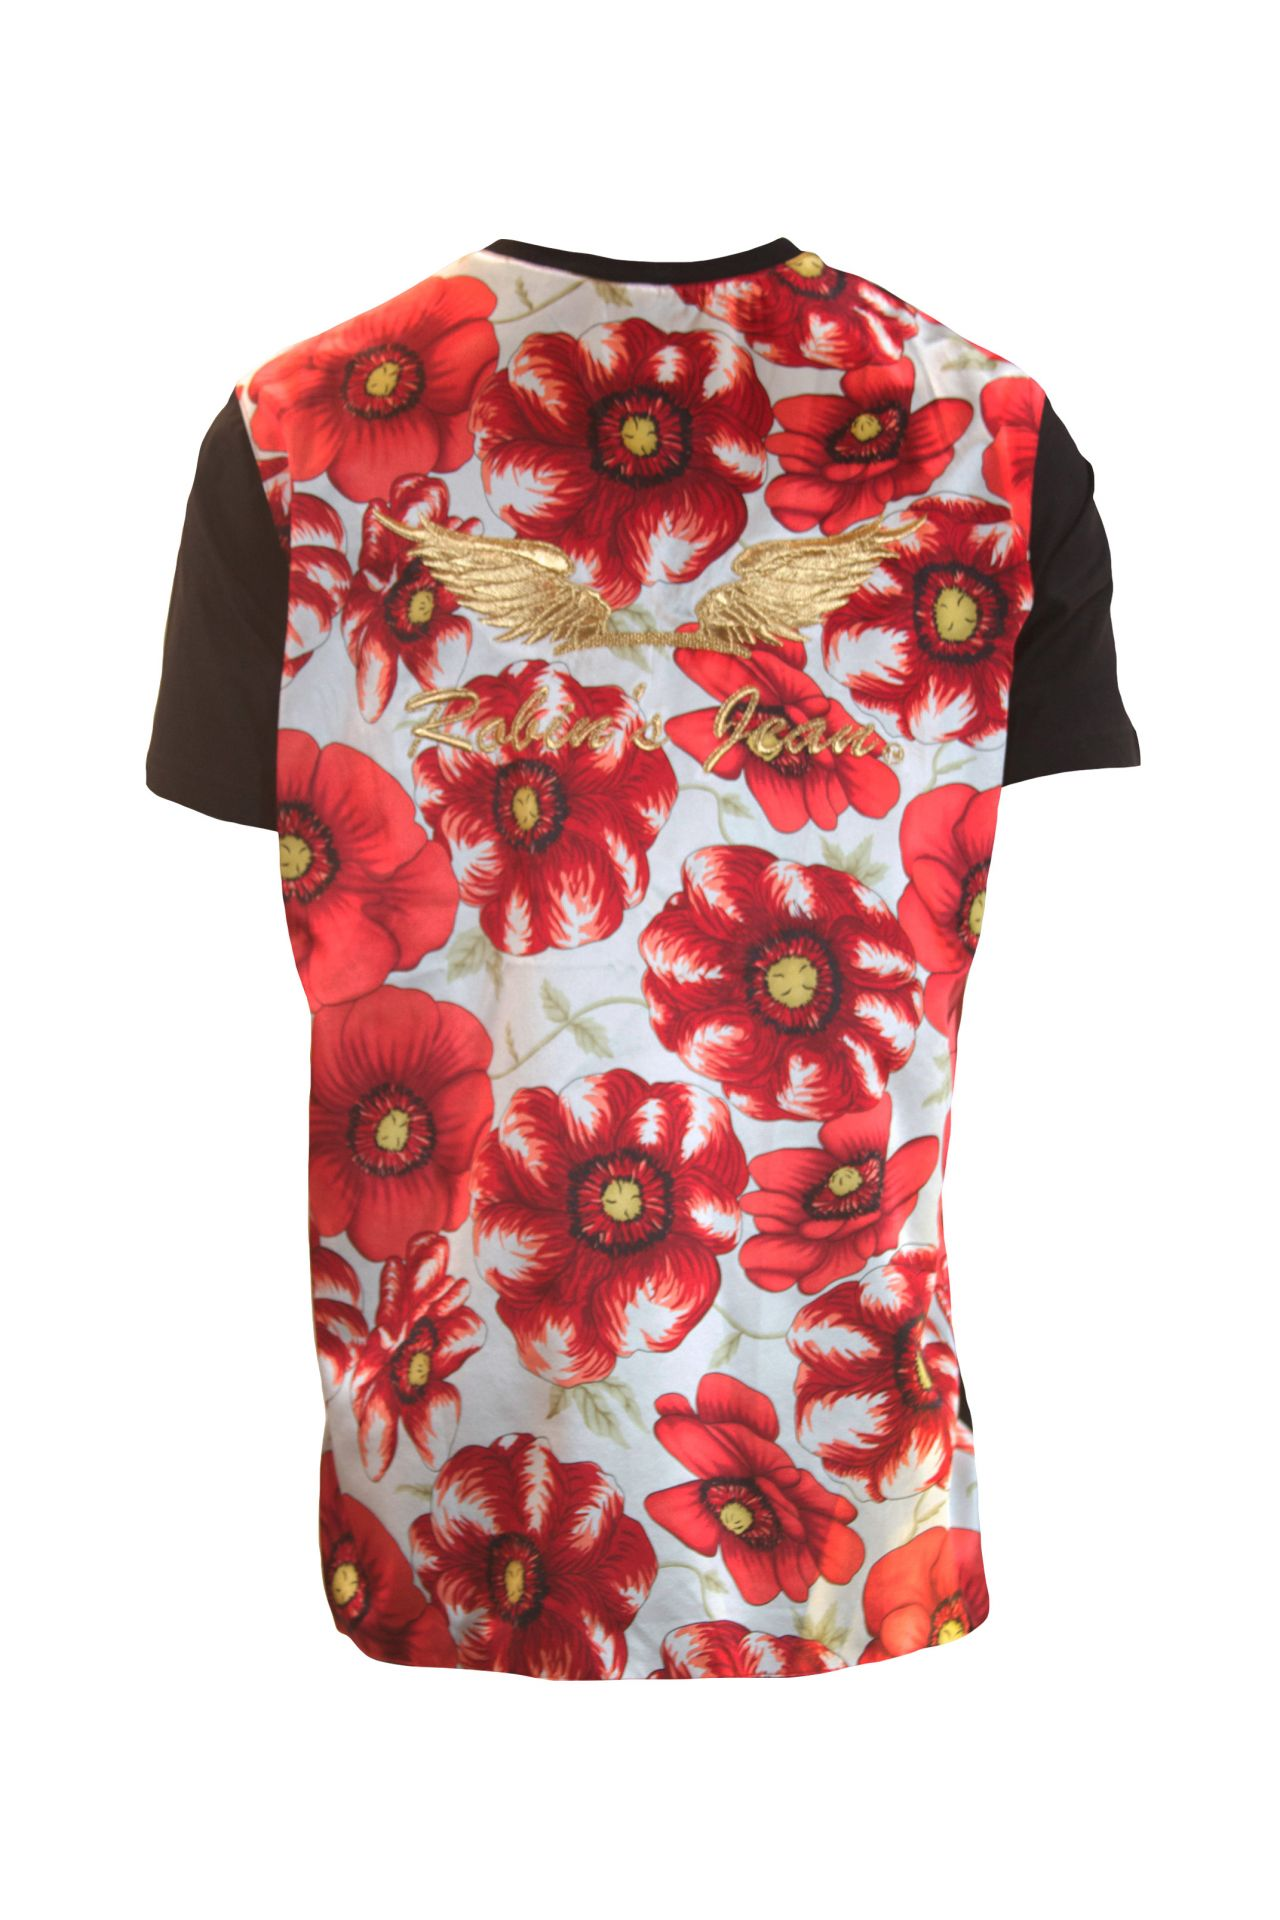 FLORAL SILK TEE WITH WINGS IN BLACK